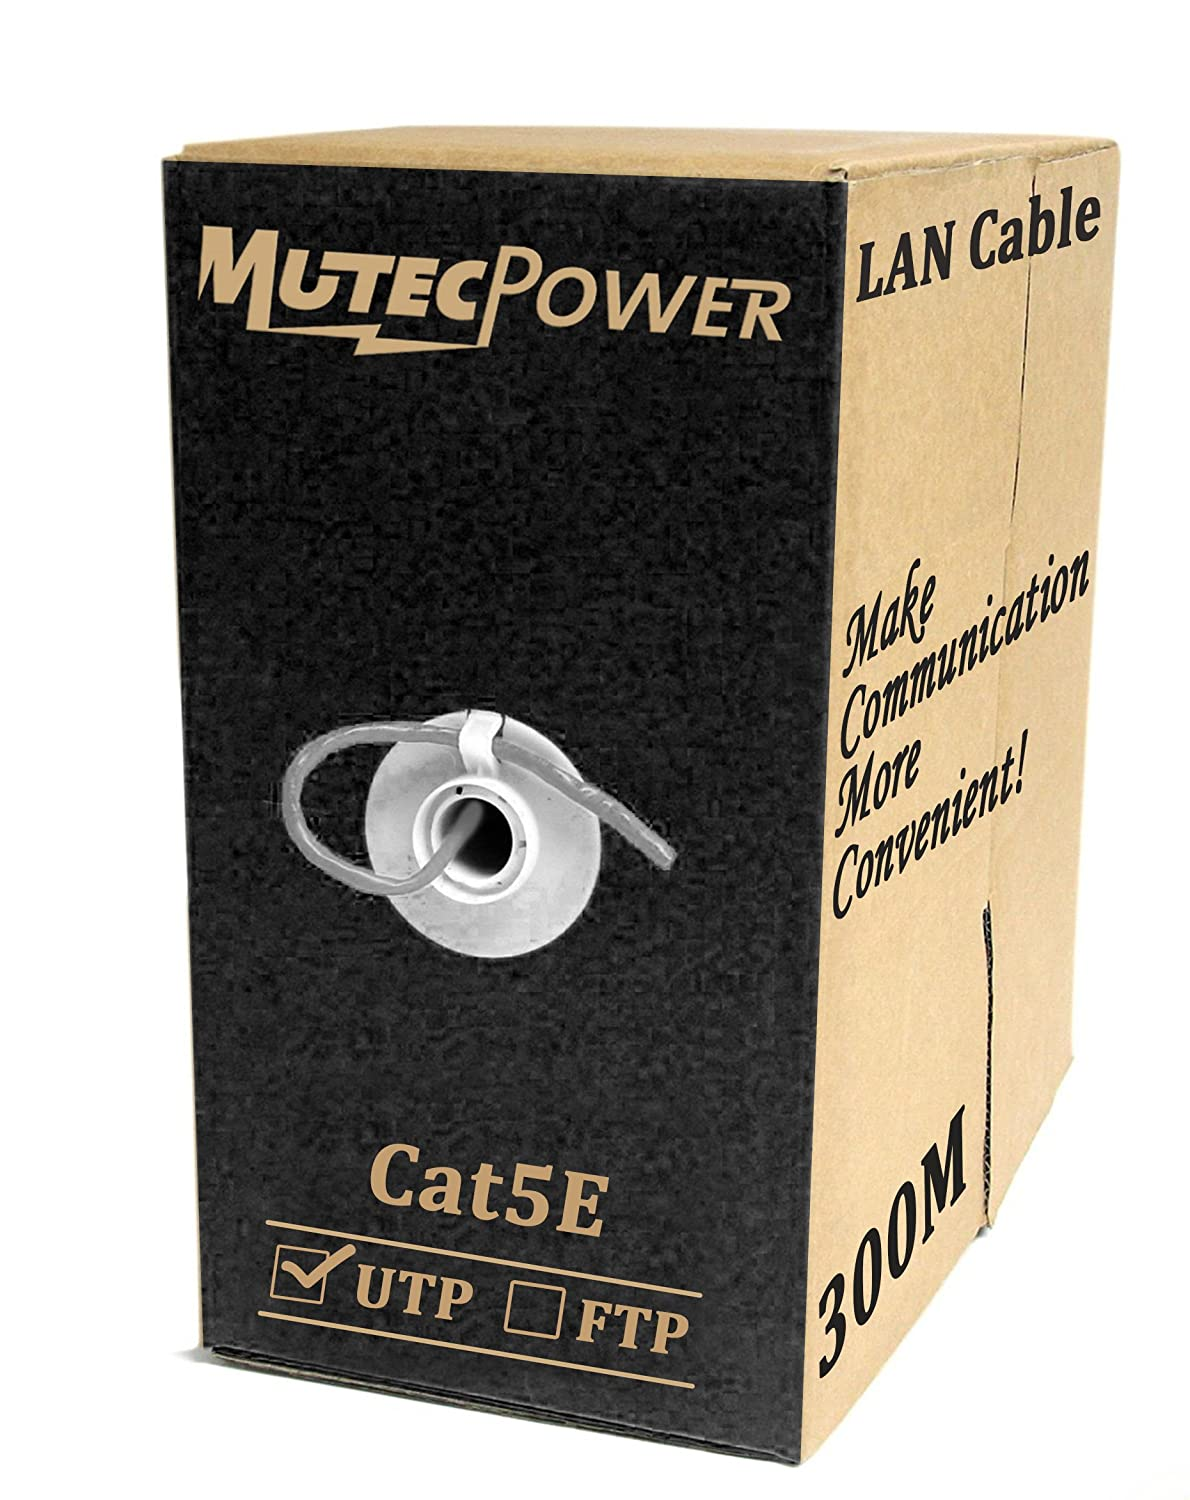 MutecPower CAT5E Indoor Ethernet RJ45 100M CCA Internet Router Web Networking Patch Lead LAN Cable 300ft BLL23N